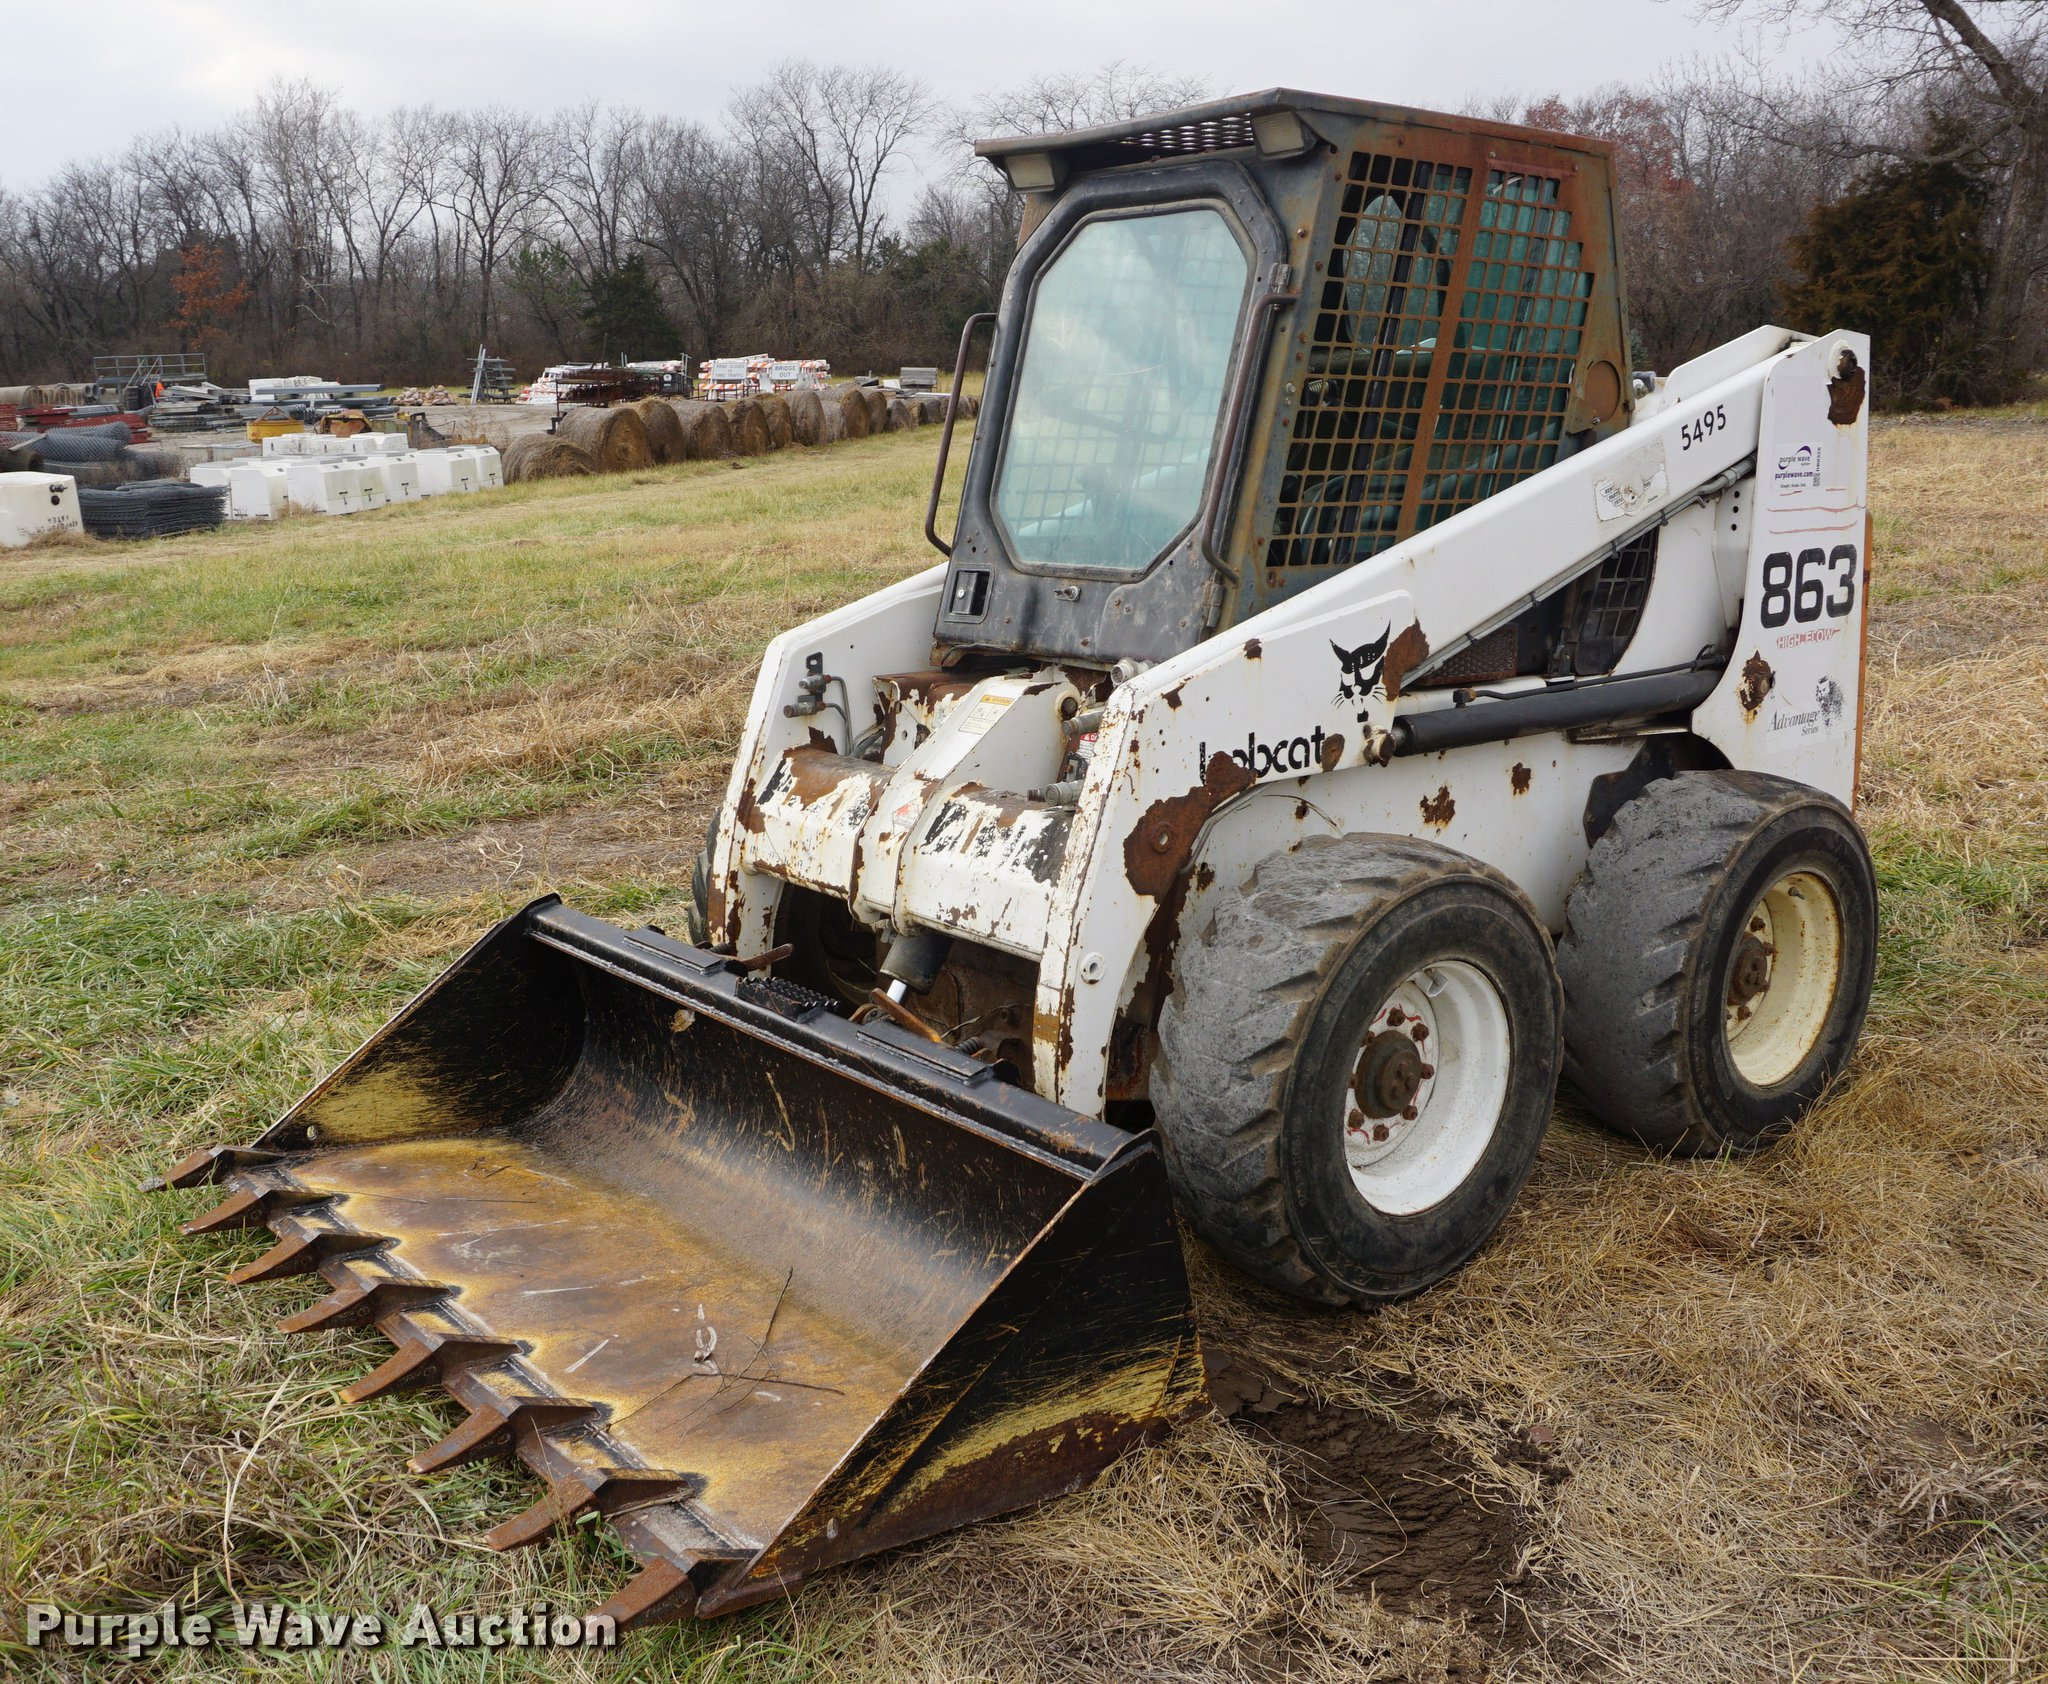 1999 Bobcat 863 skid steer | Item DB0328 | SOLD! January 25